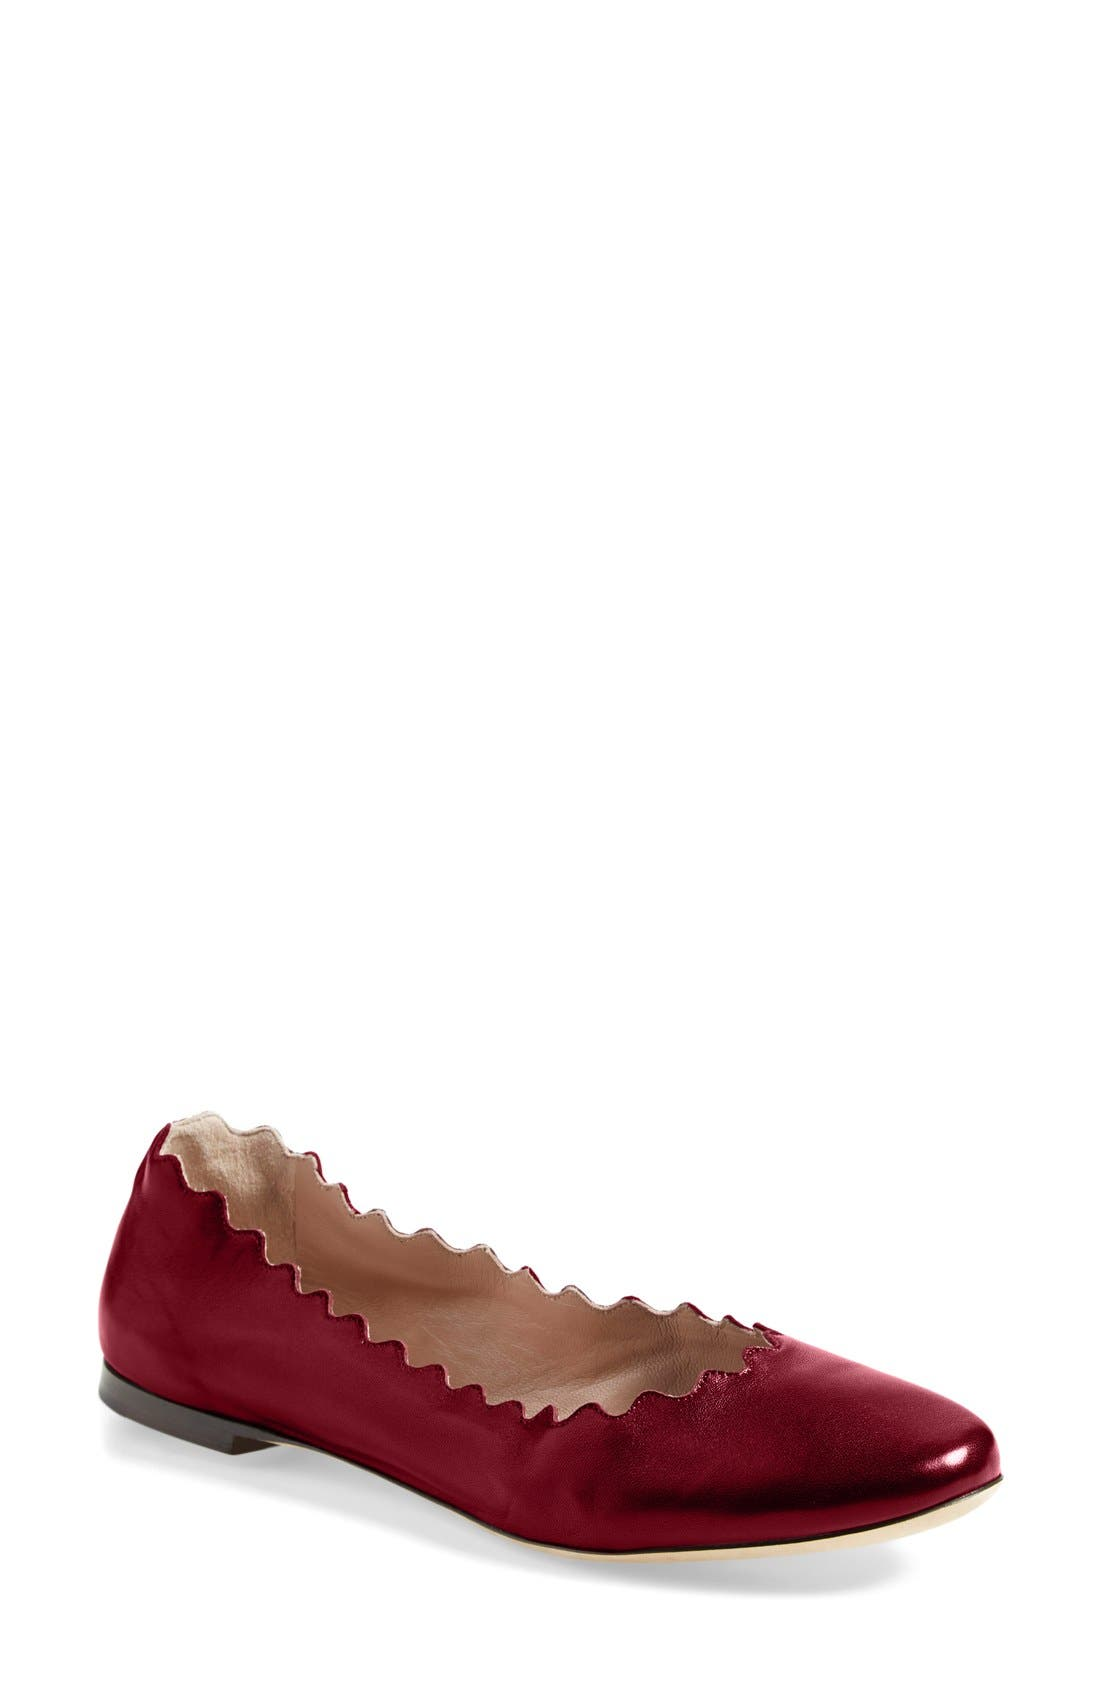 Main Image - Chloé 'Lauren' Scalloped Ballet Flat (Women)